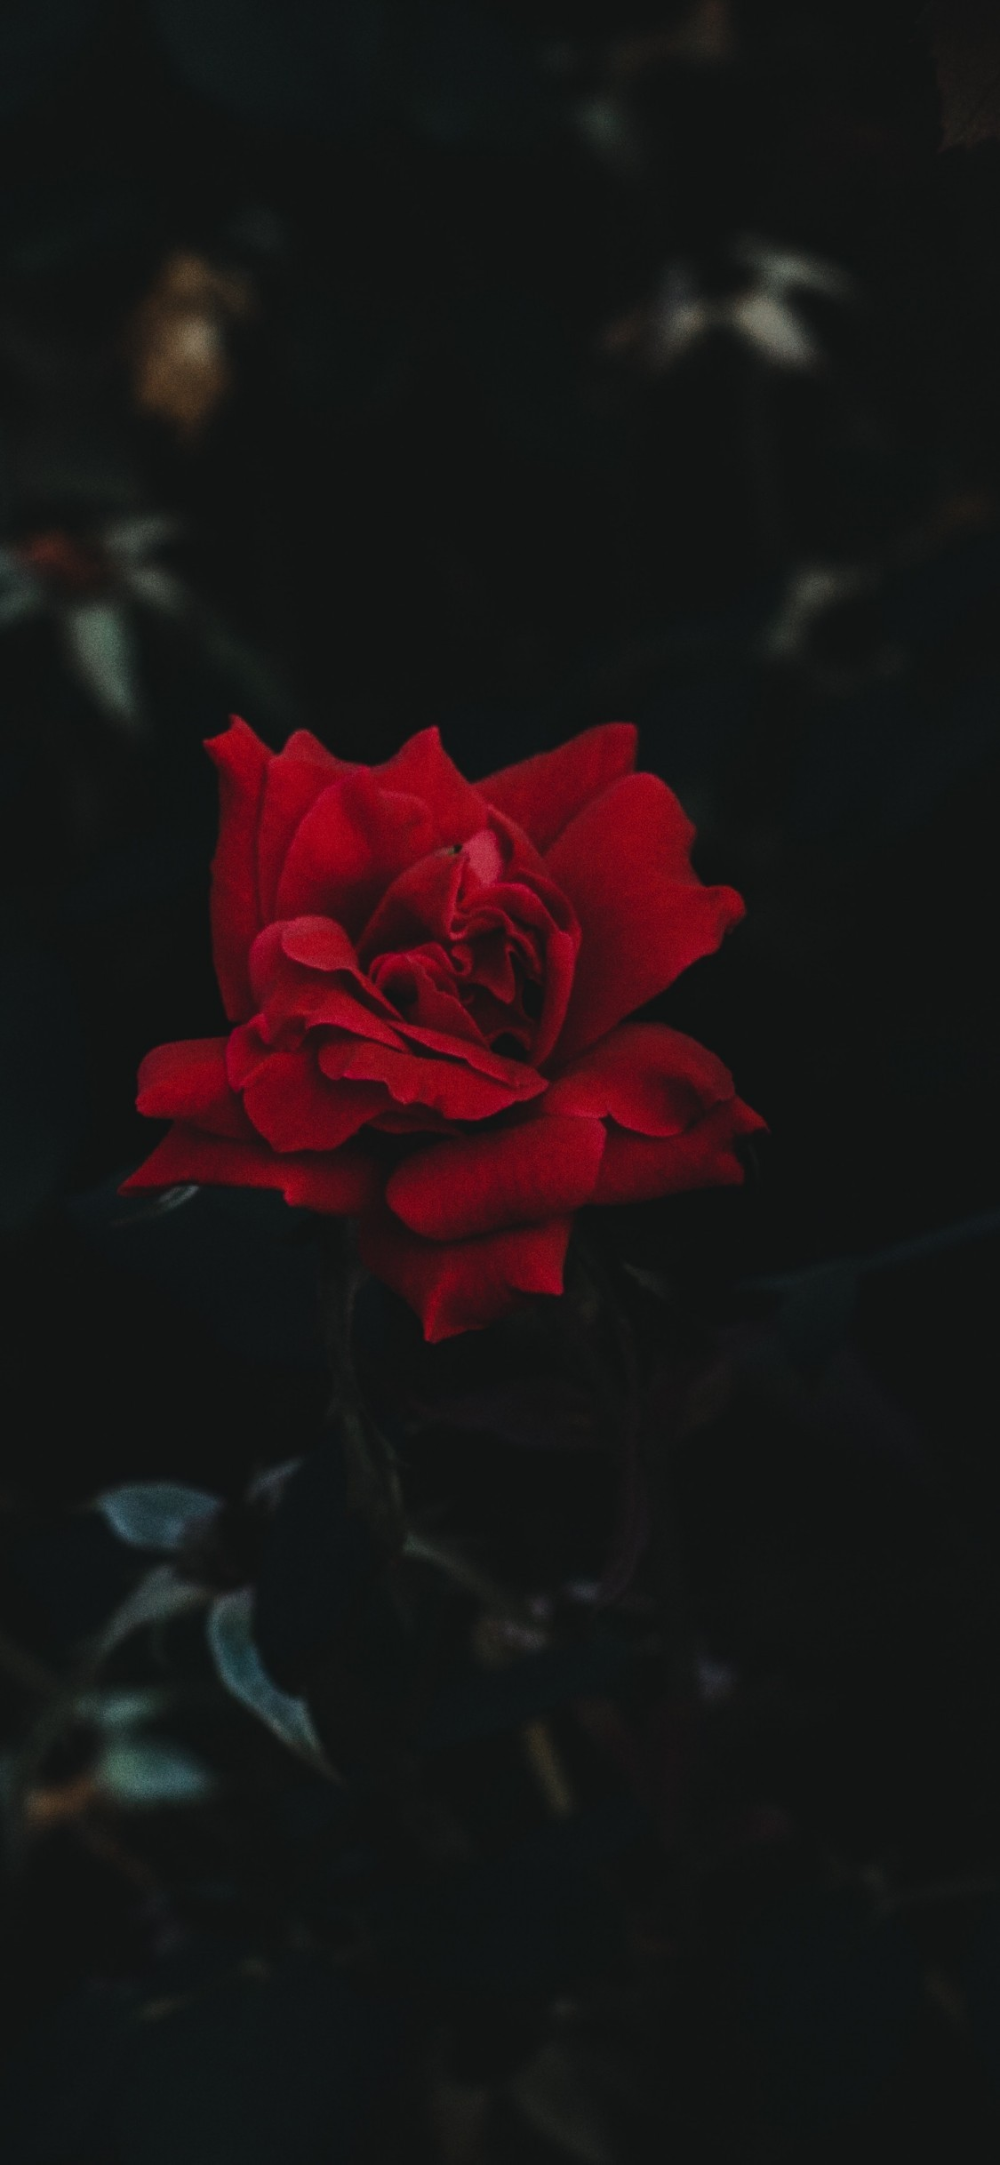 Download Red Rose Wallpaper Hd Backgrounds Download Itl Cat Wallpaper Iphone Roses Red Roses Wallpaper Rose Wallpaper